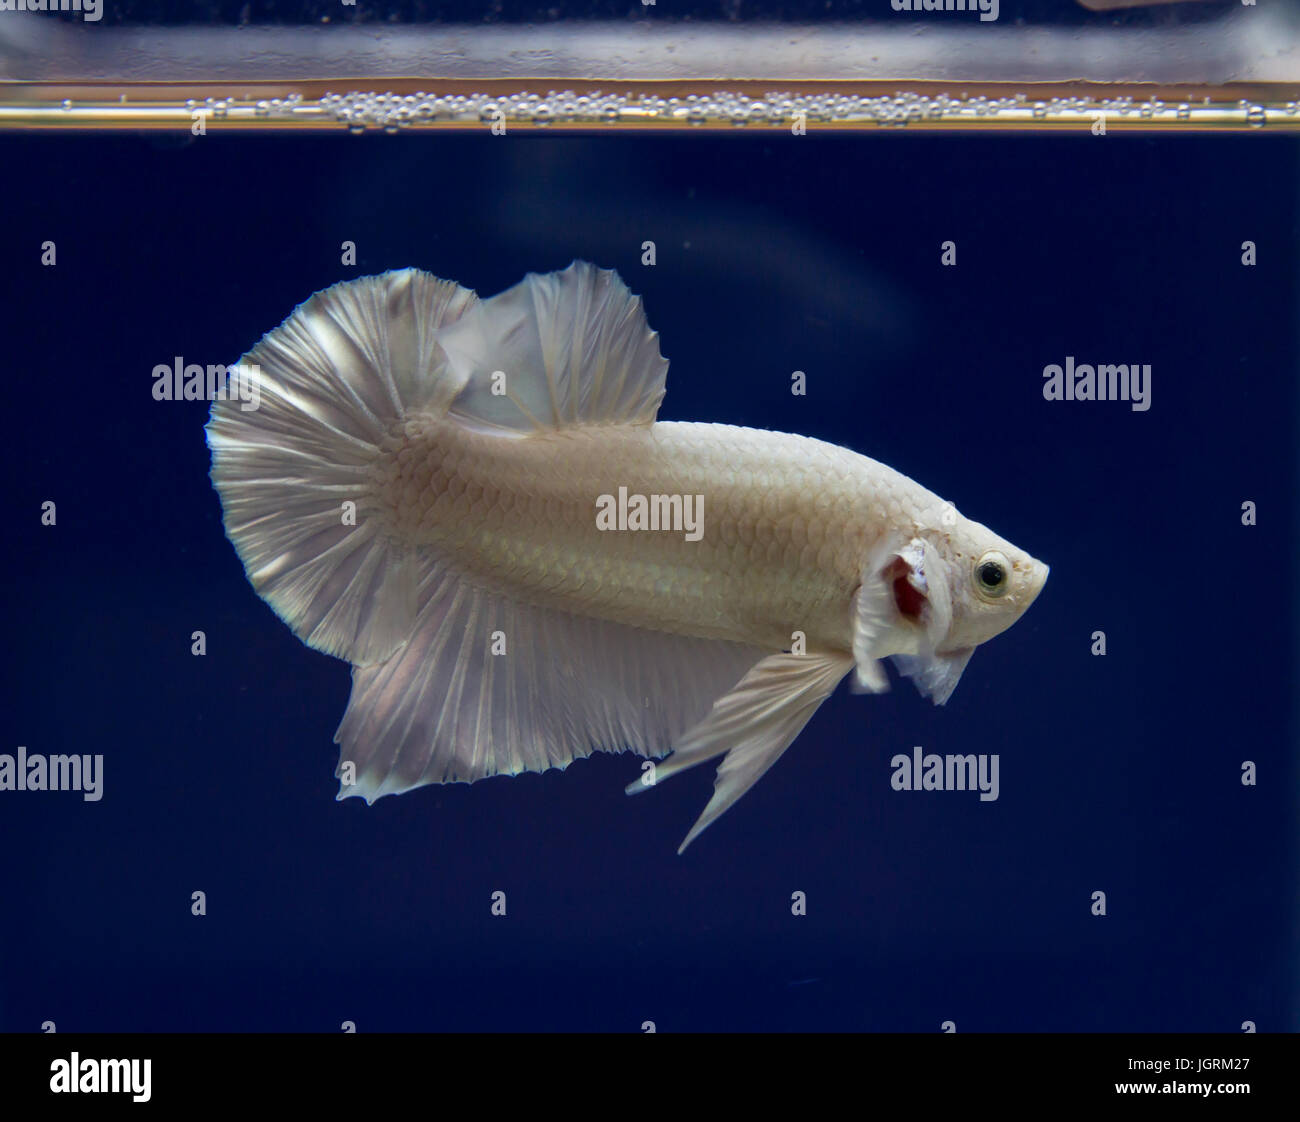 White siamese fighting fish in a blue background - Stock Image